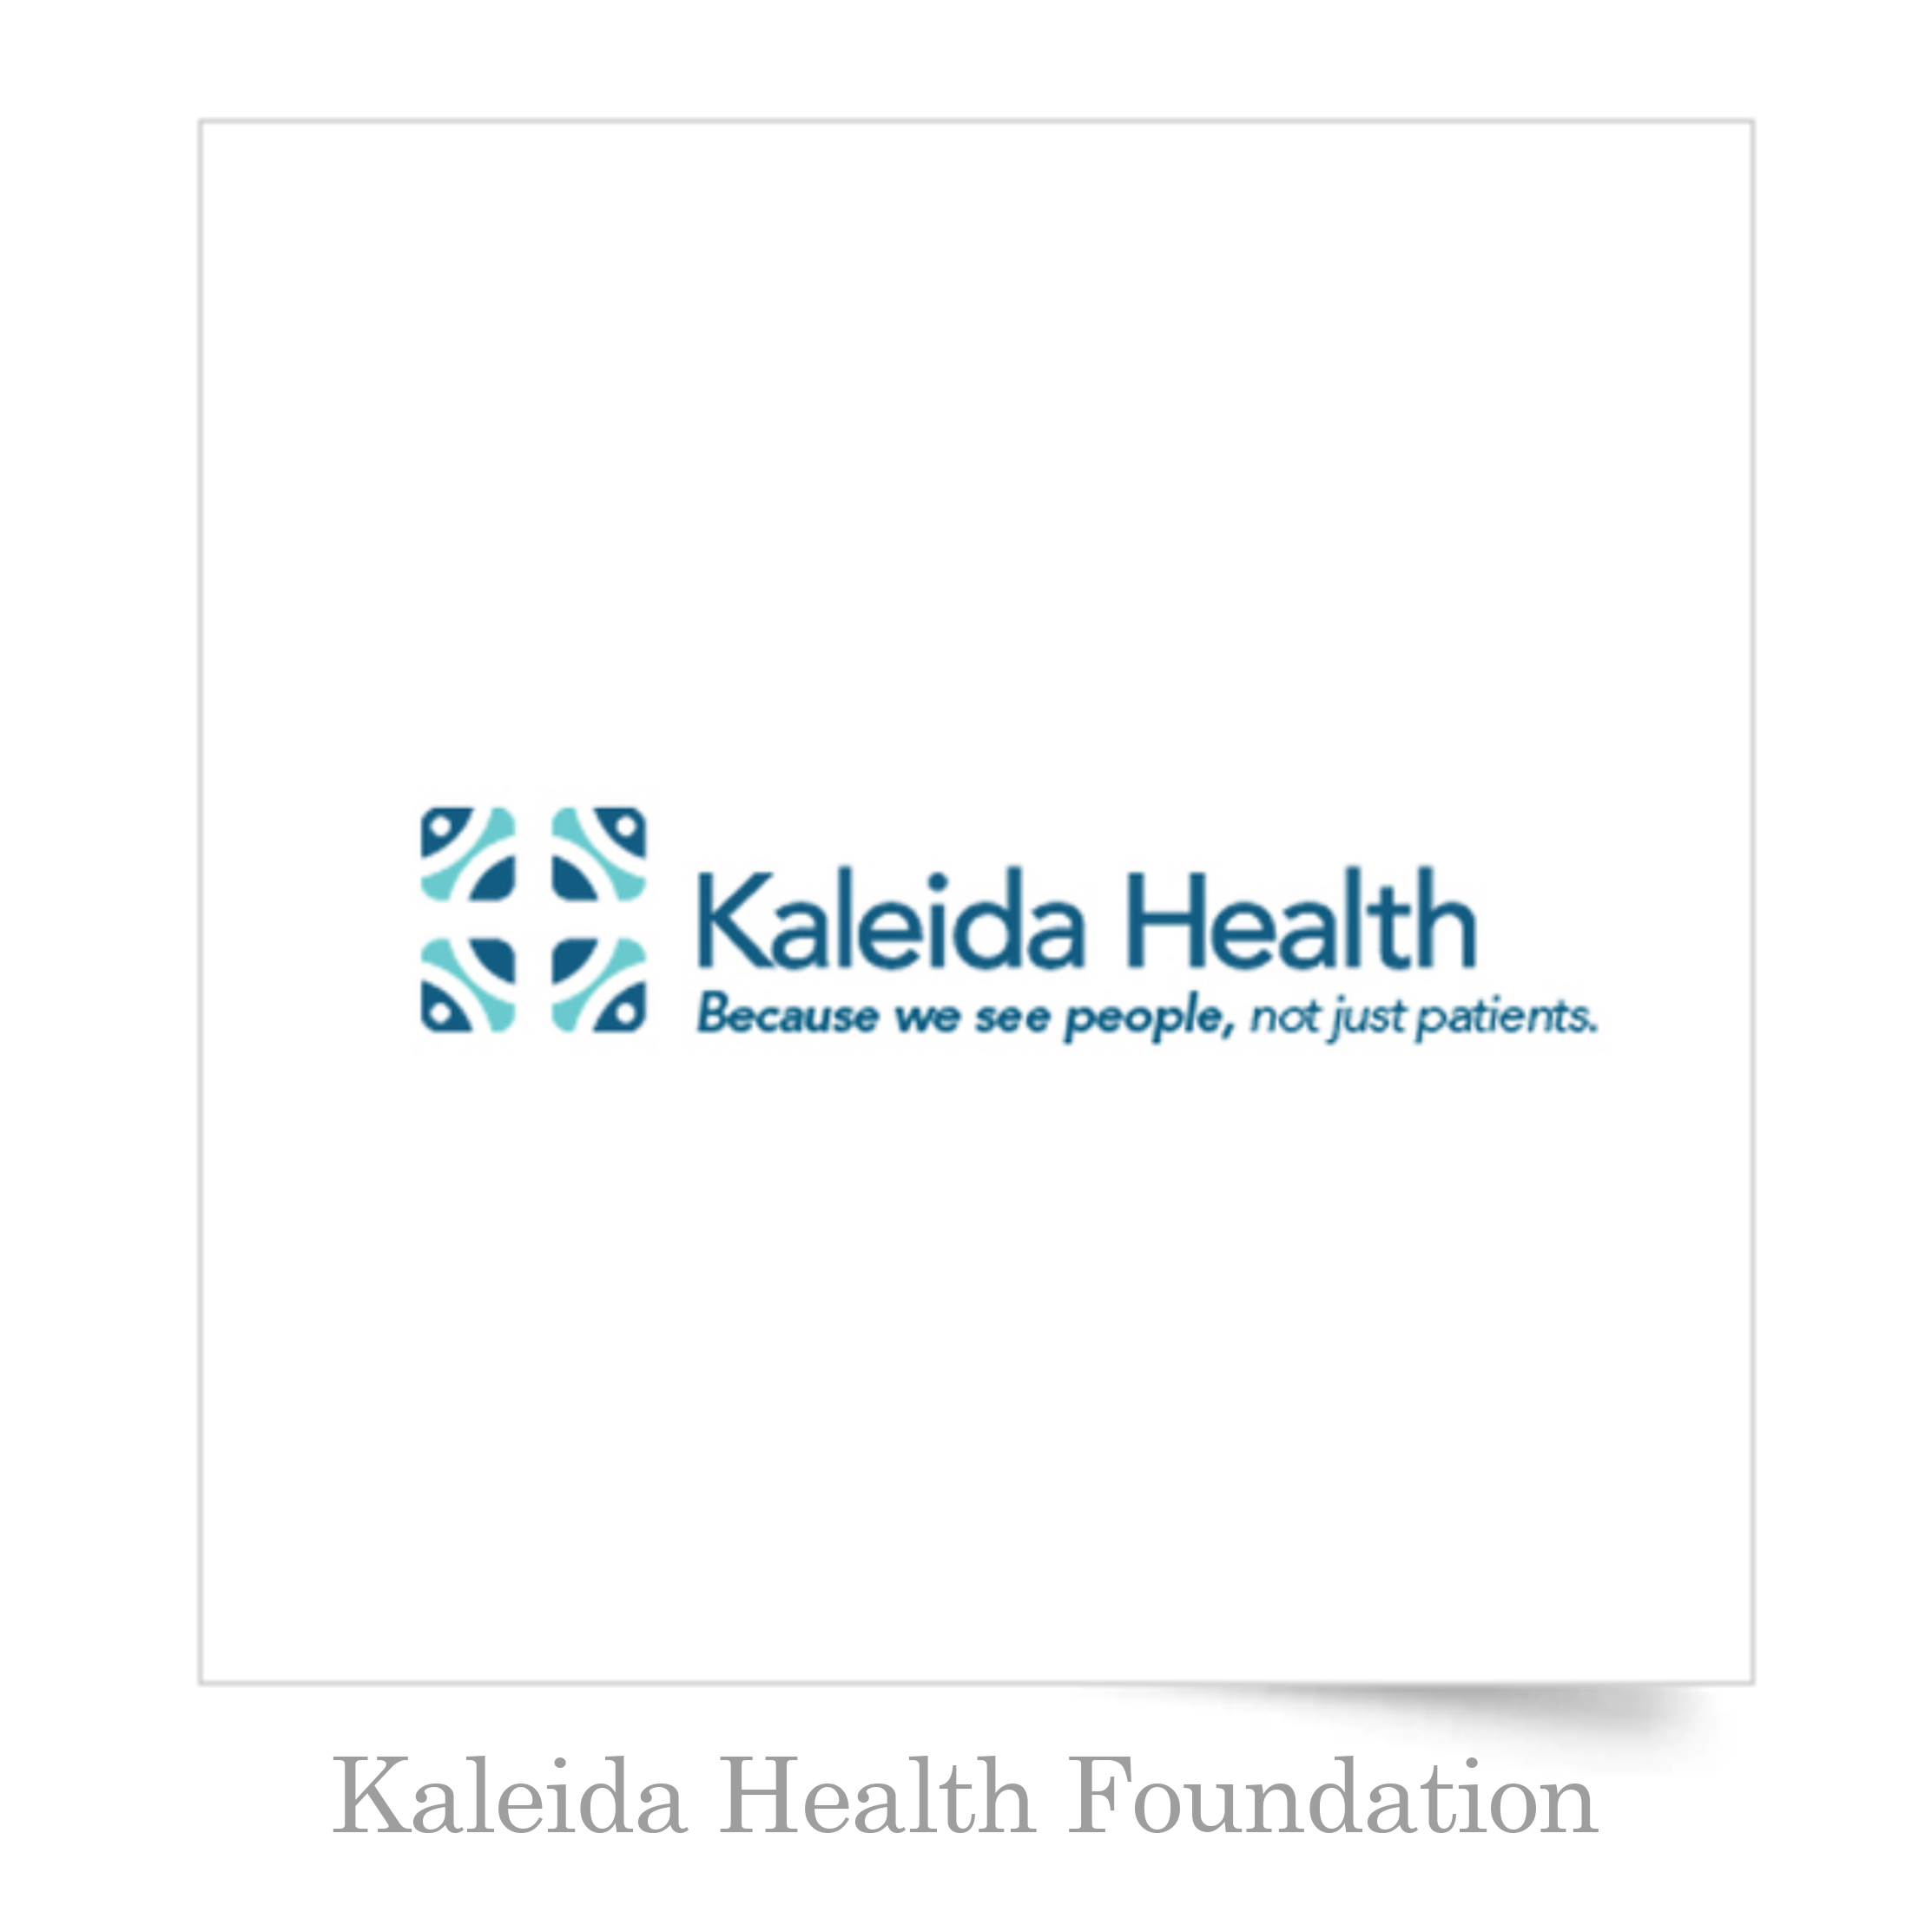 kaleida health foundation